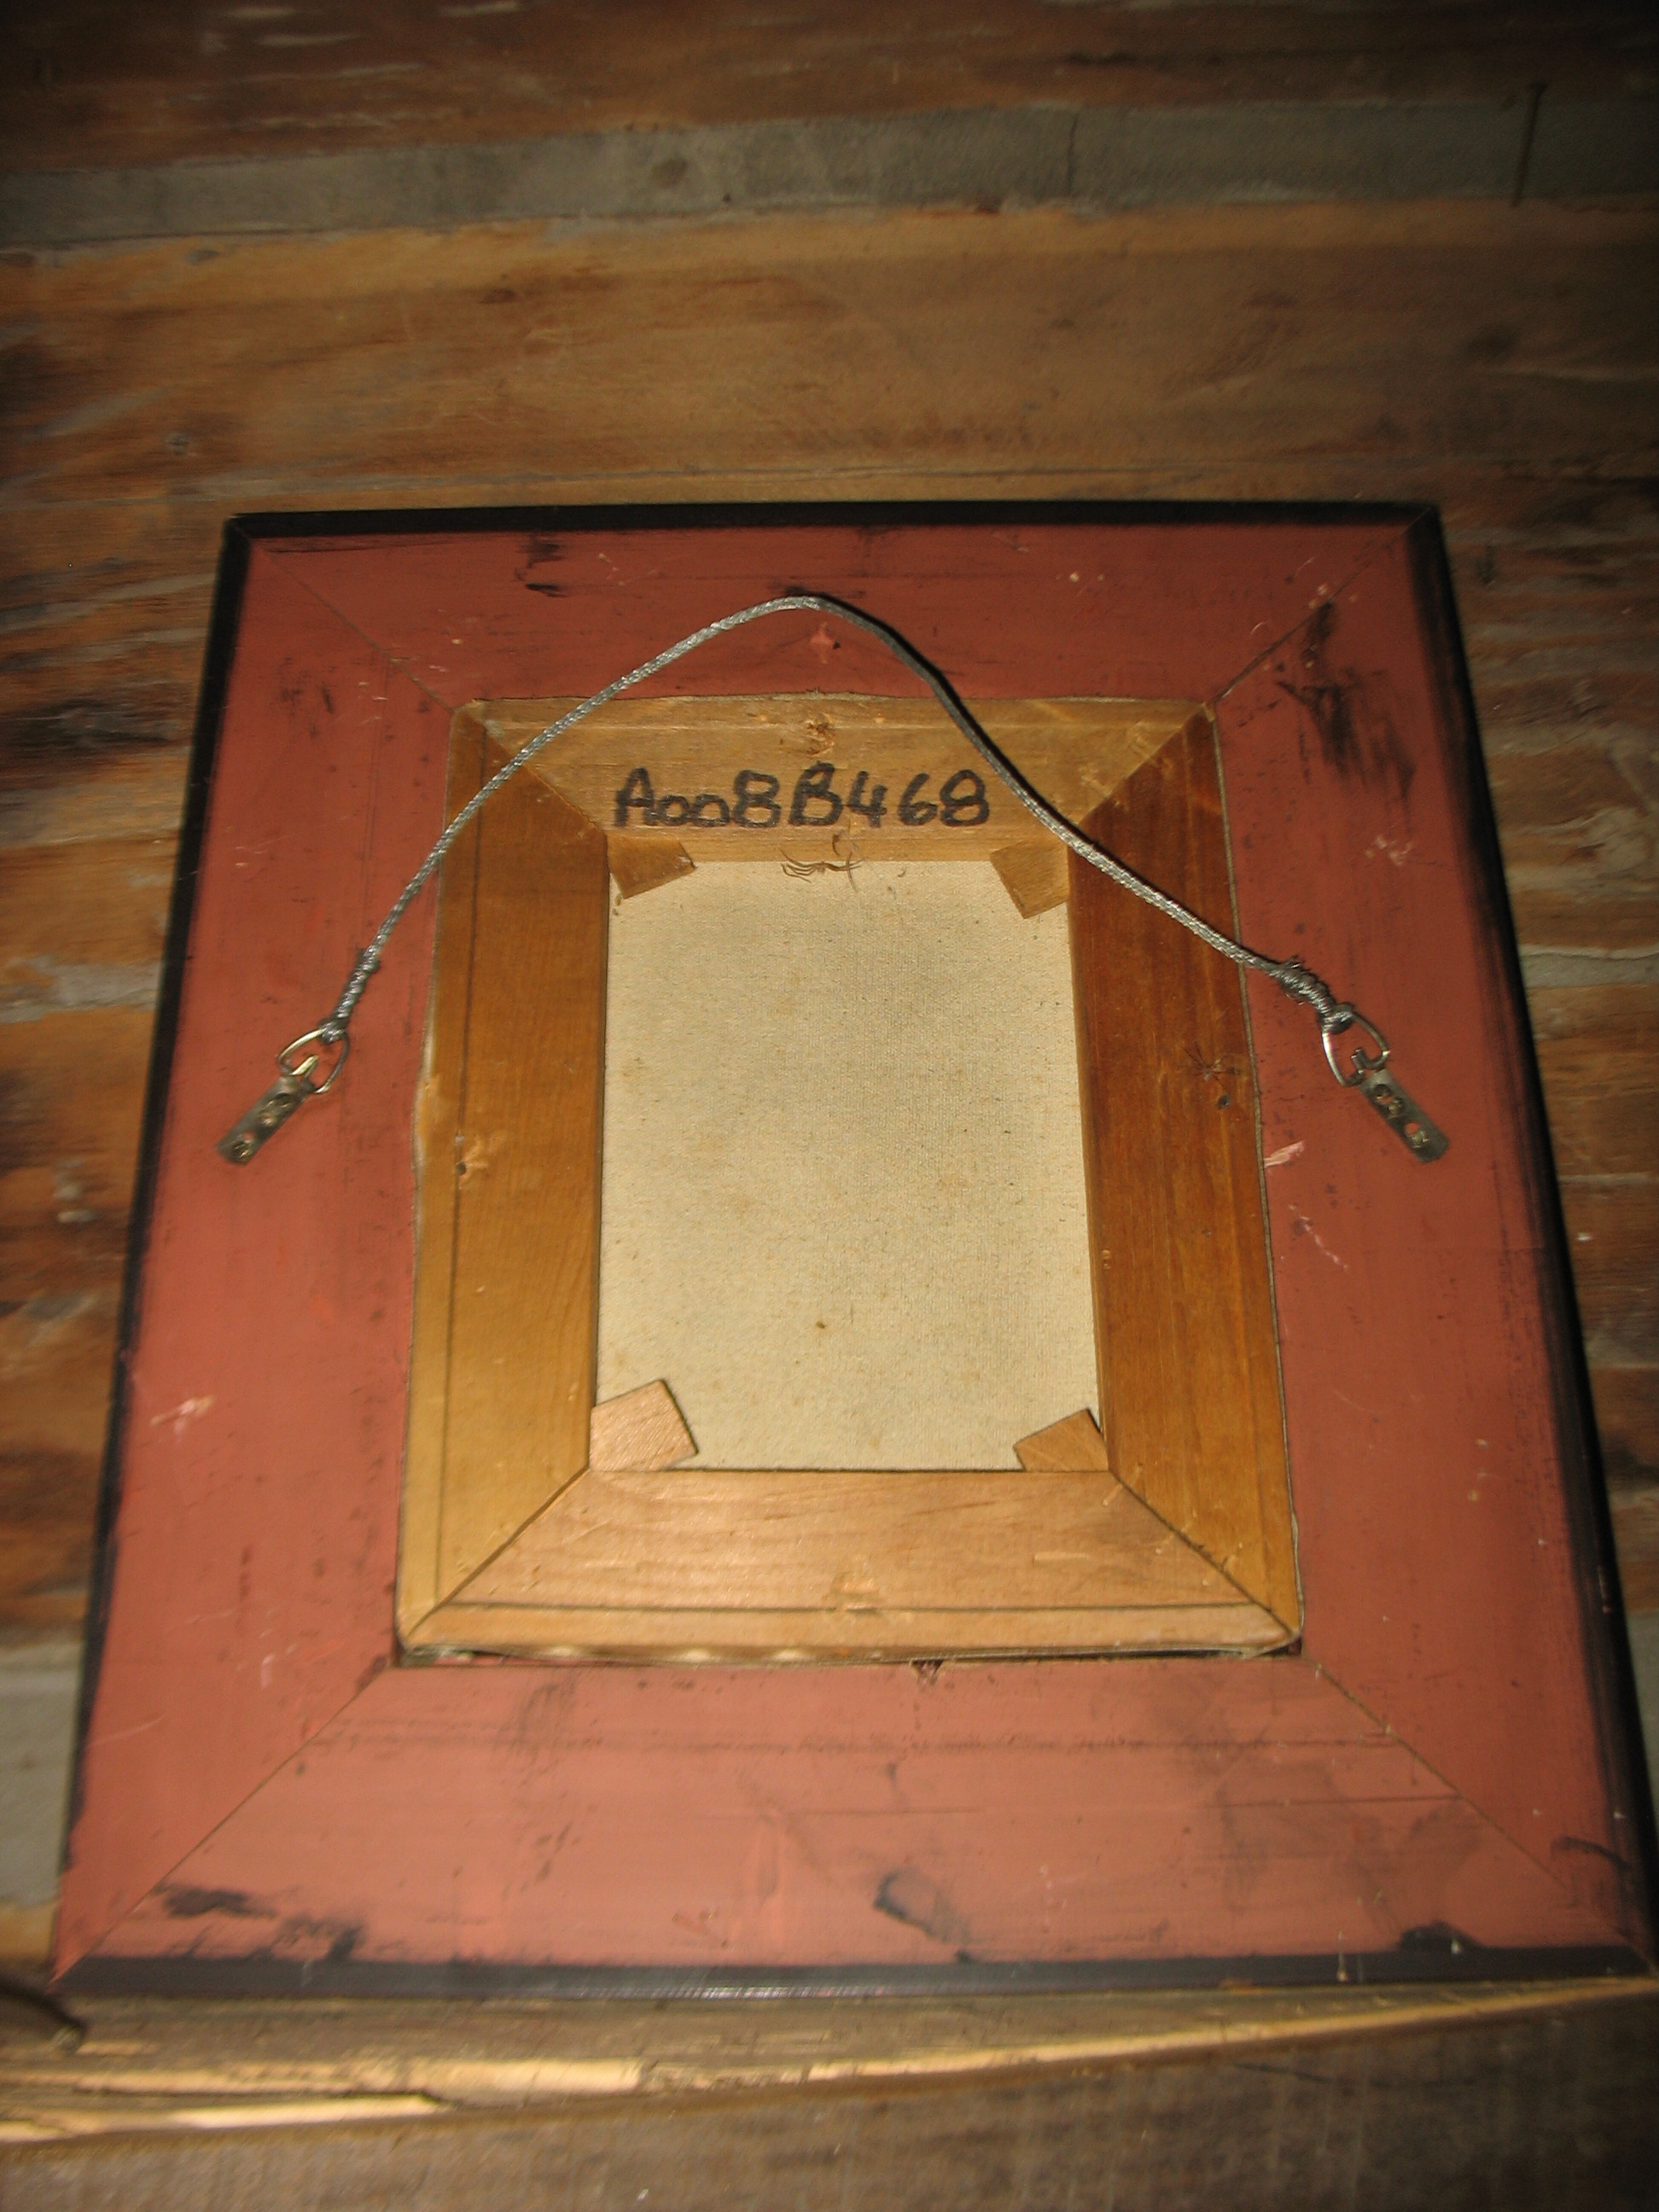 This shows the back of the frame.